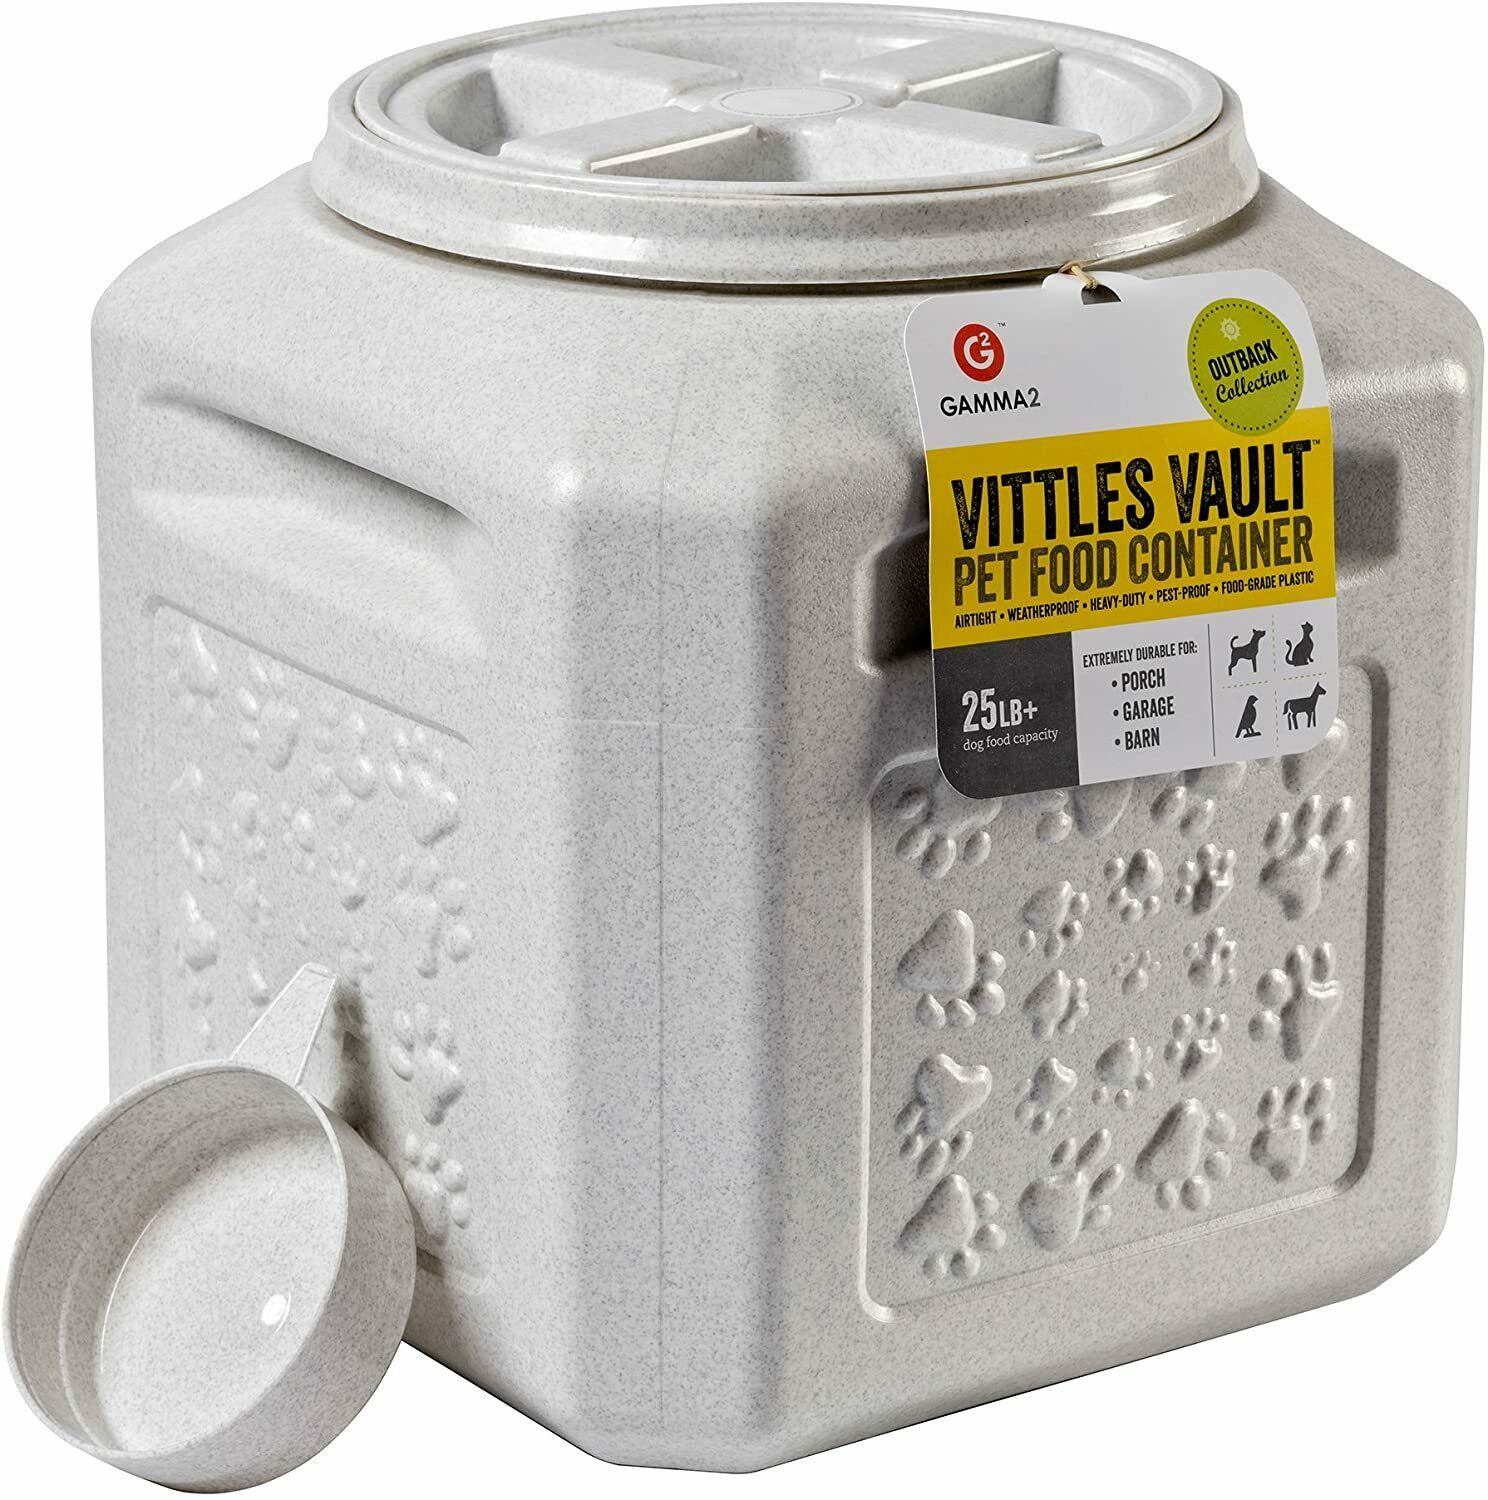 Vittles Vault, Outback Stackable Airtight Pet Food Storage Container, 25 LBS.